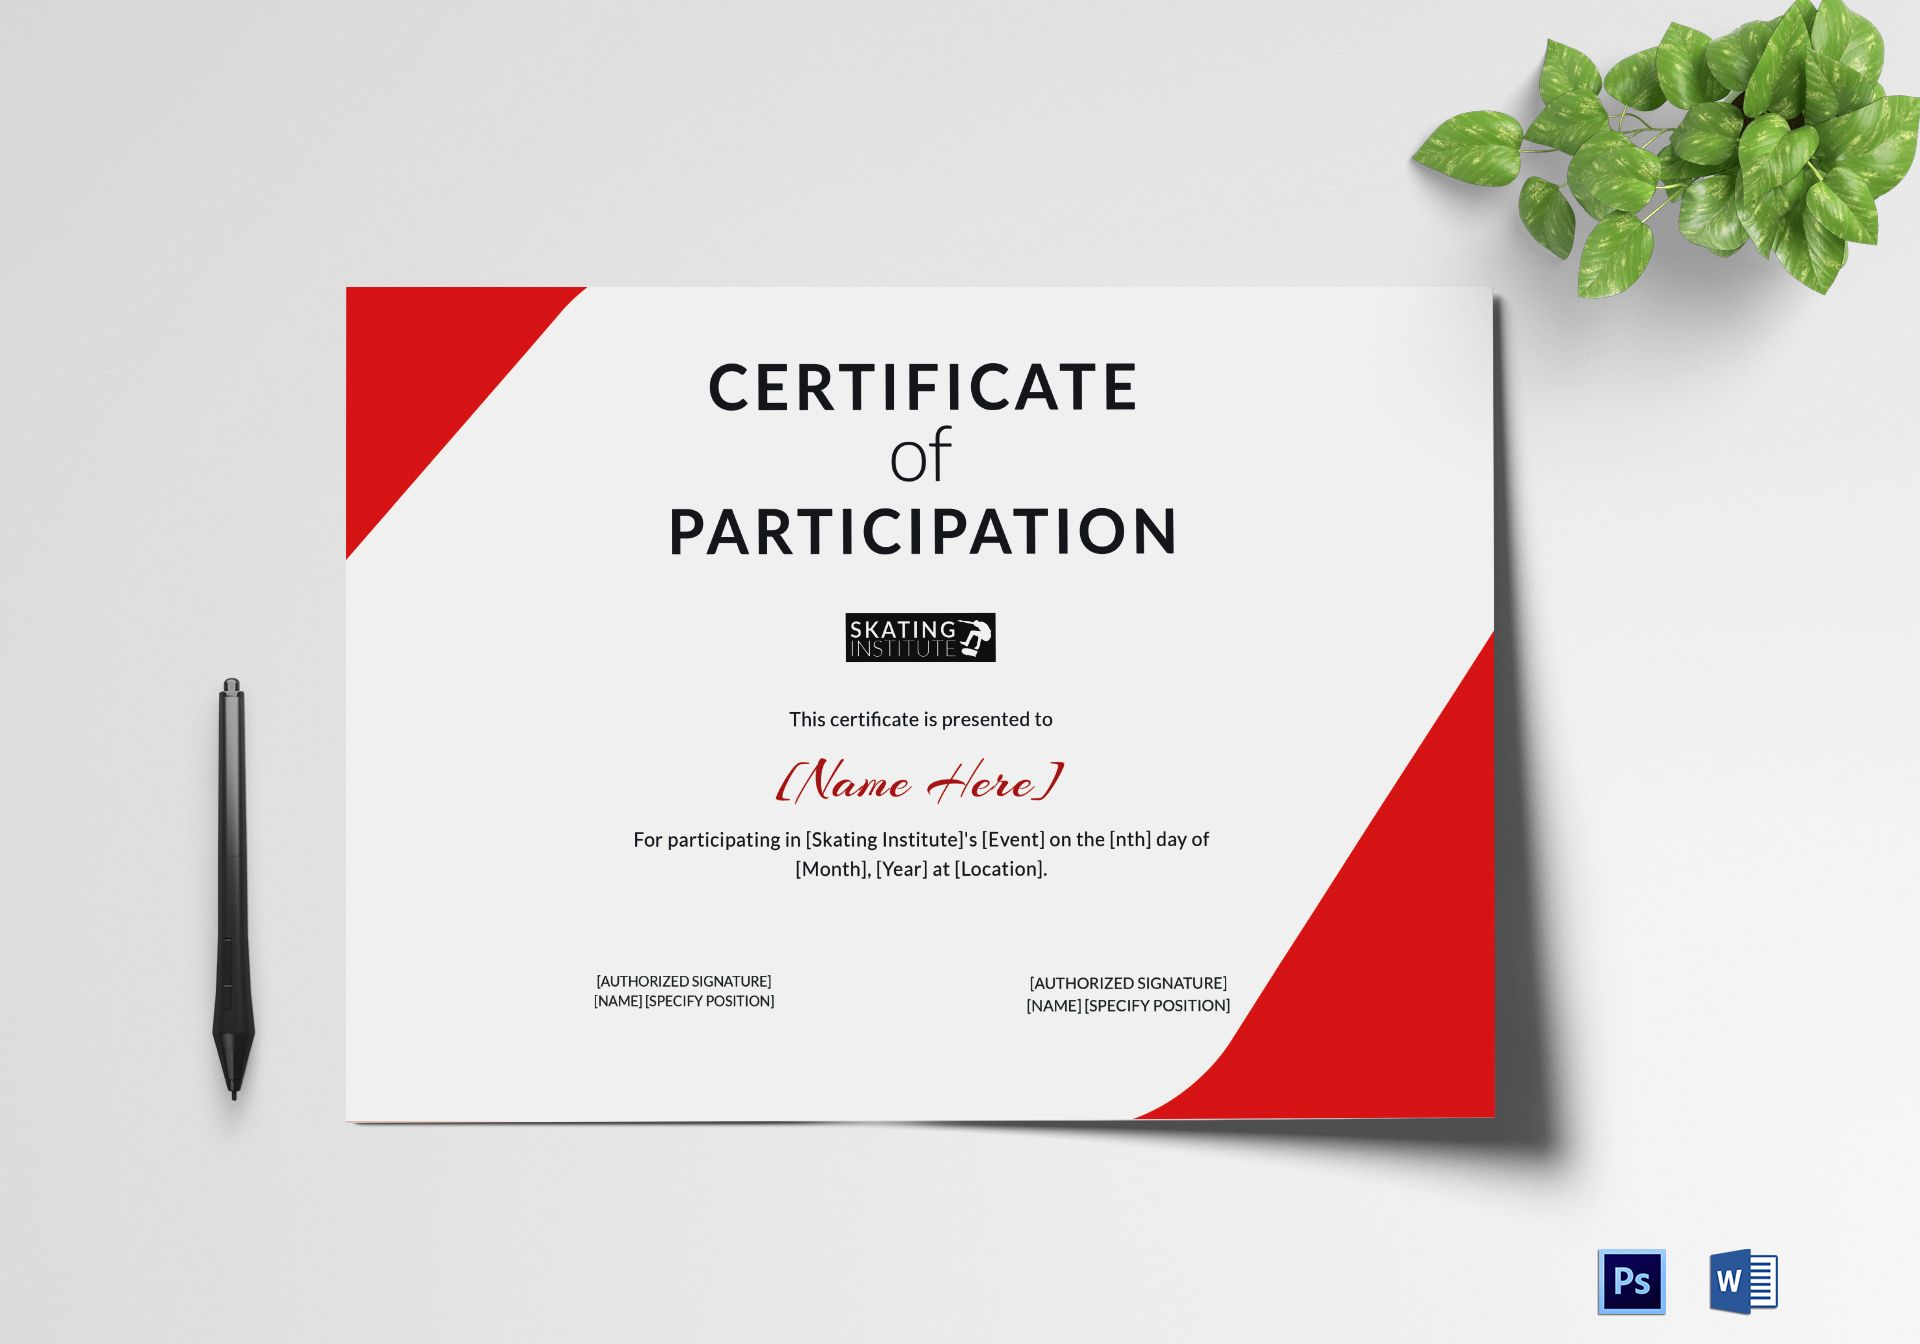 Certificate of Participation for Skating